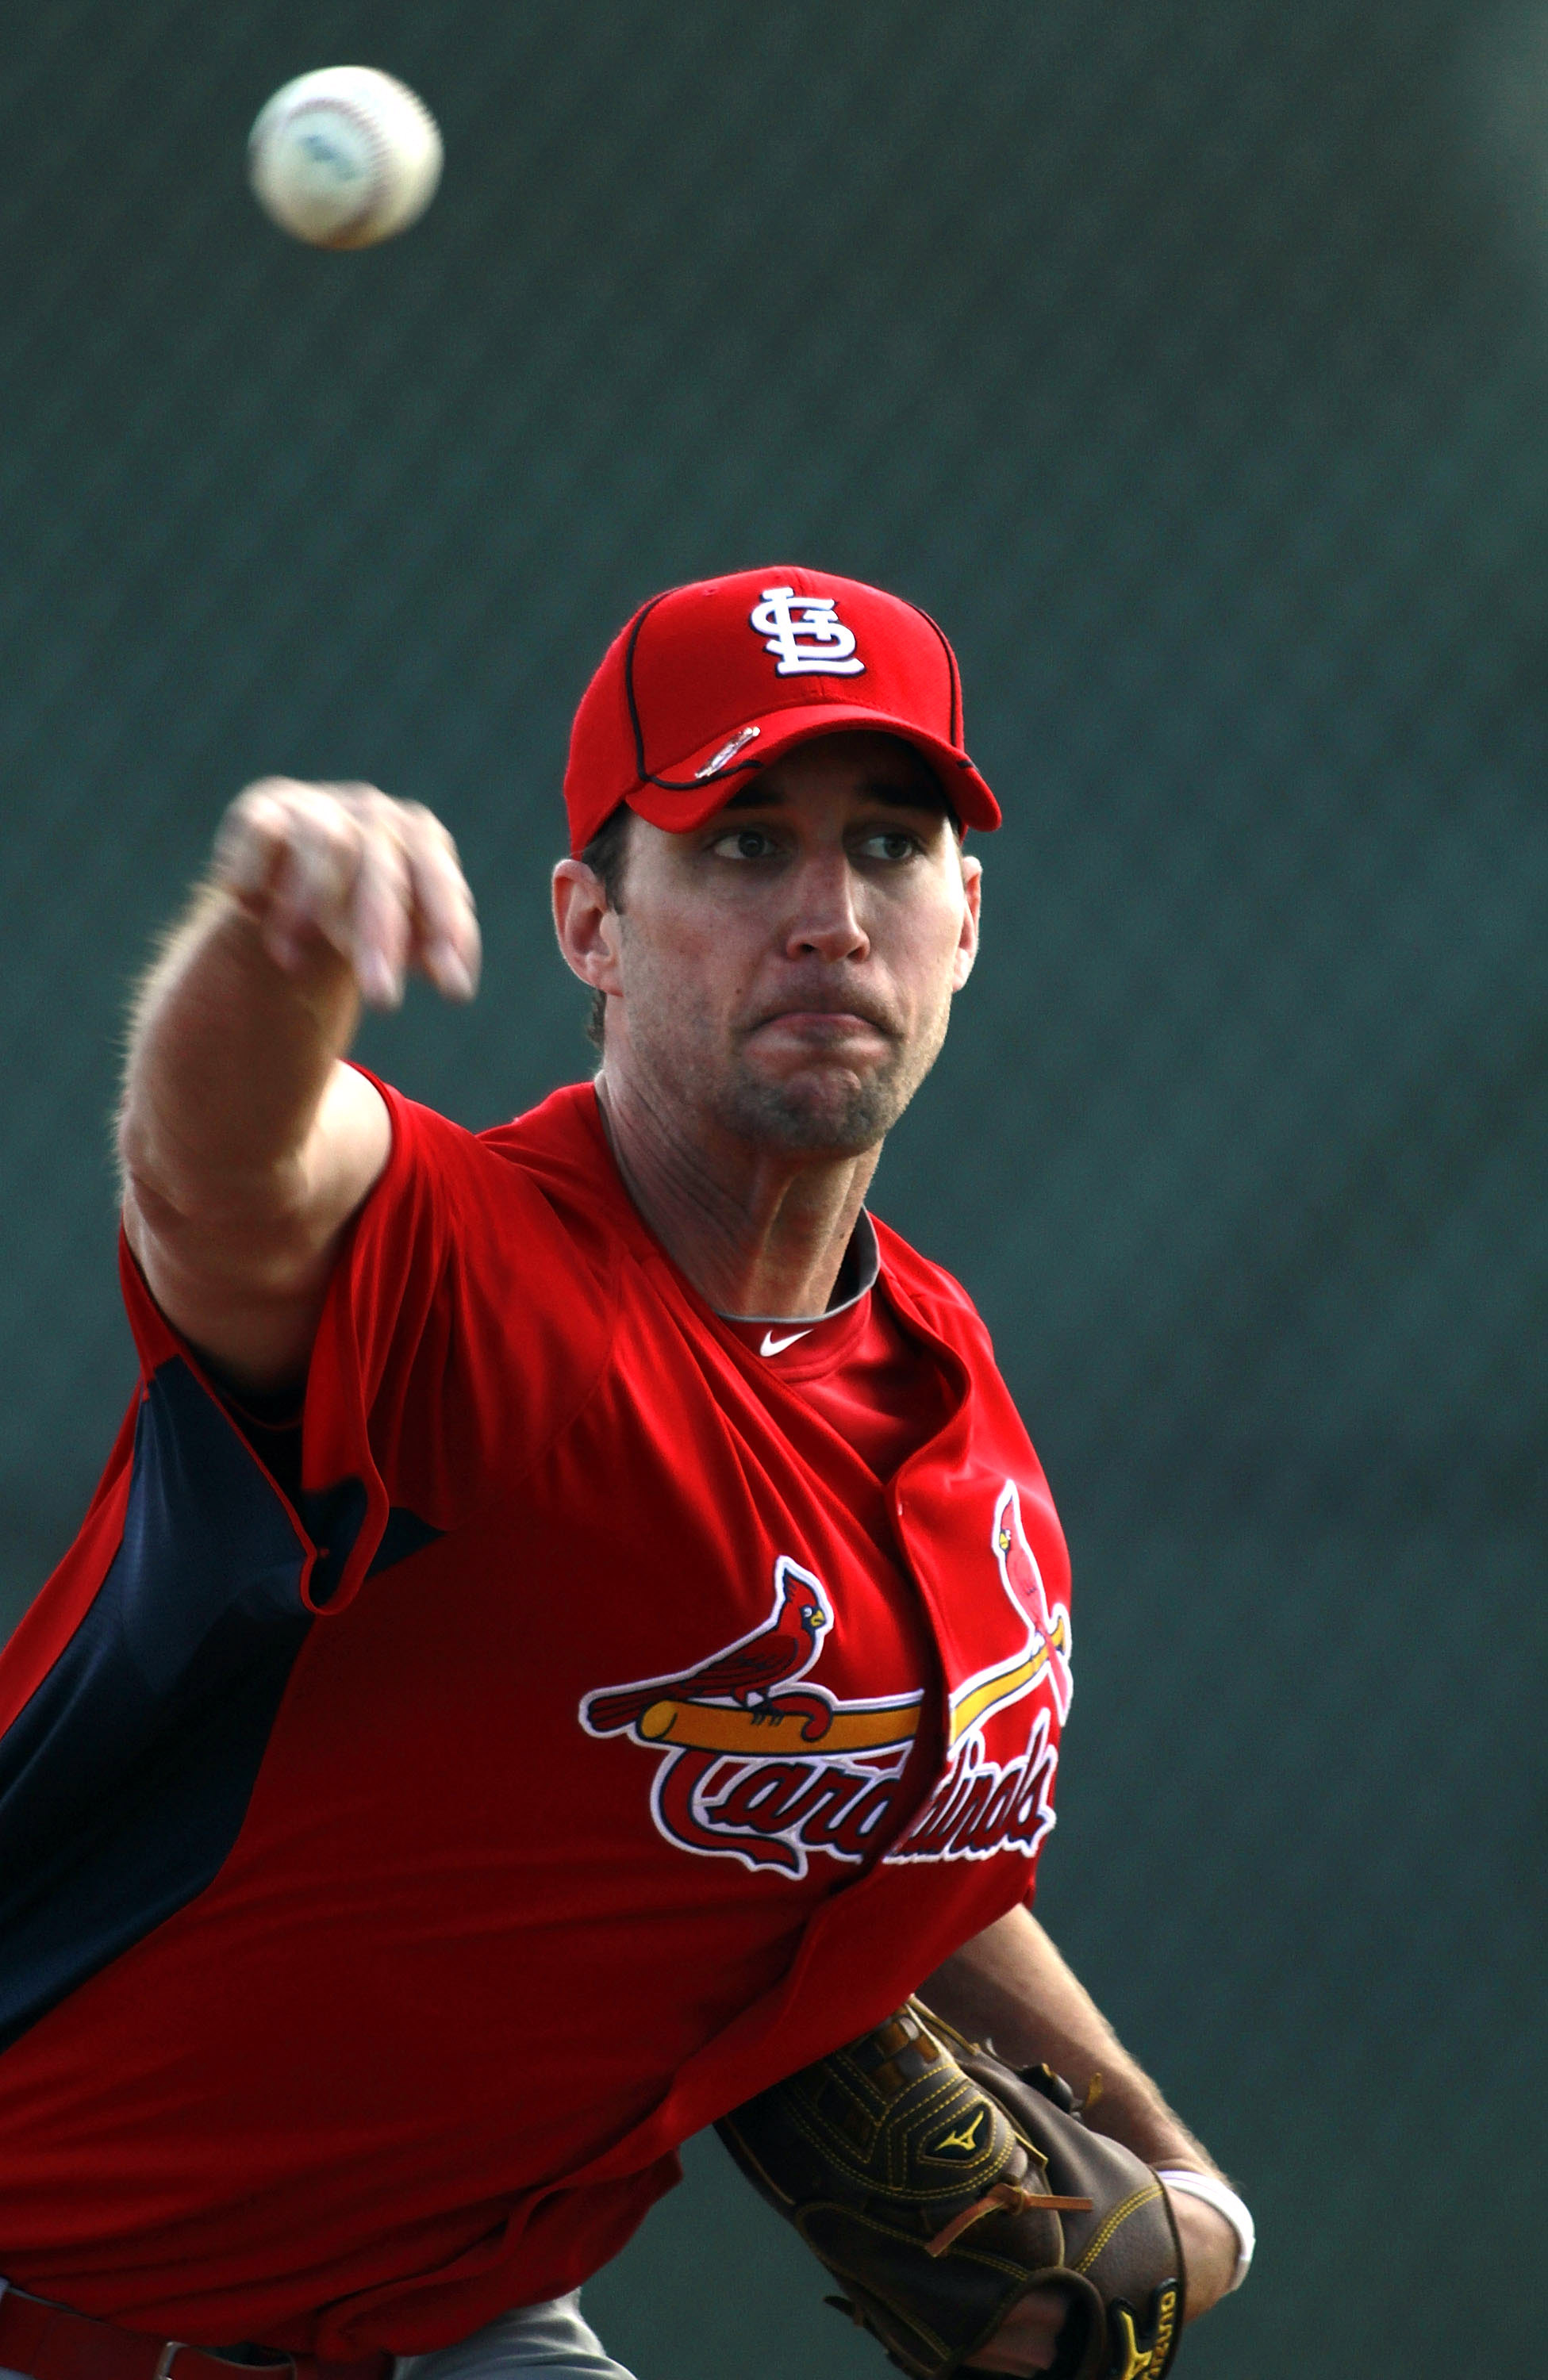 JUPITER, FL - FEBRUARY 16:  Pitcher Adam Wainwright #50 of the St. Louis Cardinals throws during spring training at Roger Dean Stadium on February 16, 2011 in Jupiter, Florida.  (Photo by Marc Serota/Getty Images)